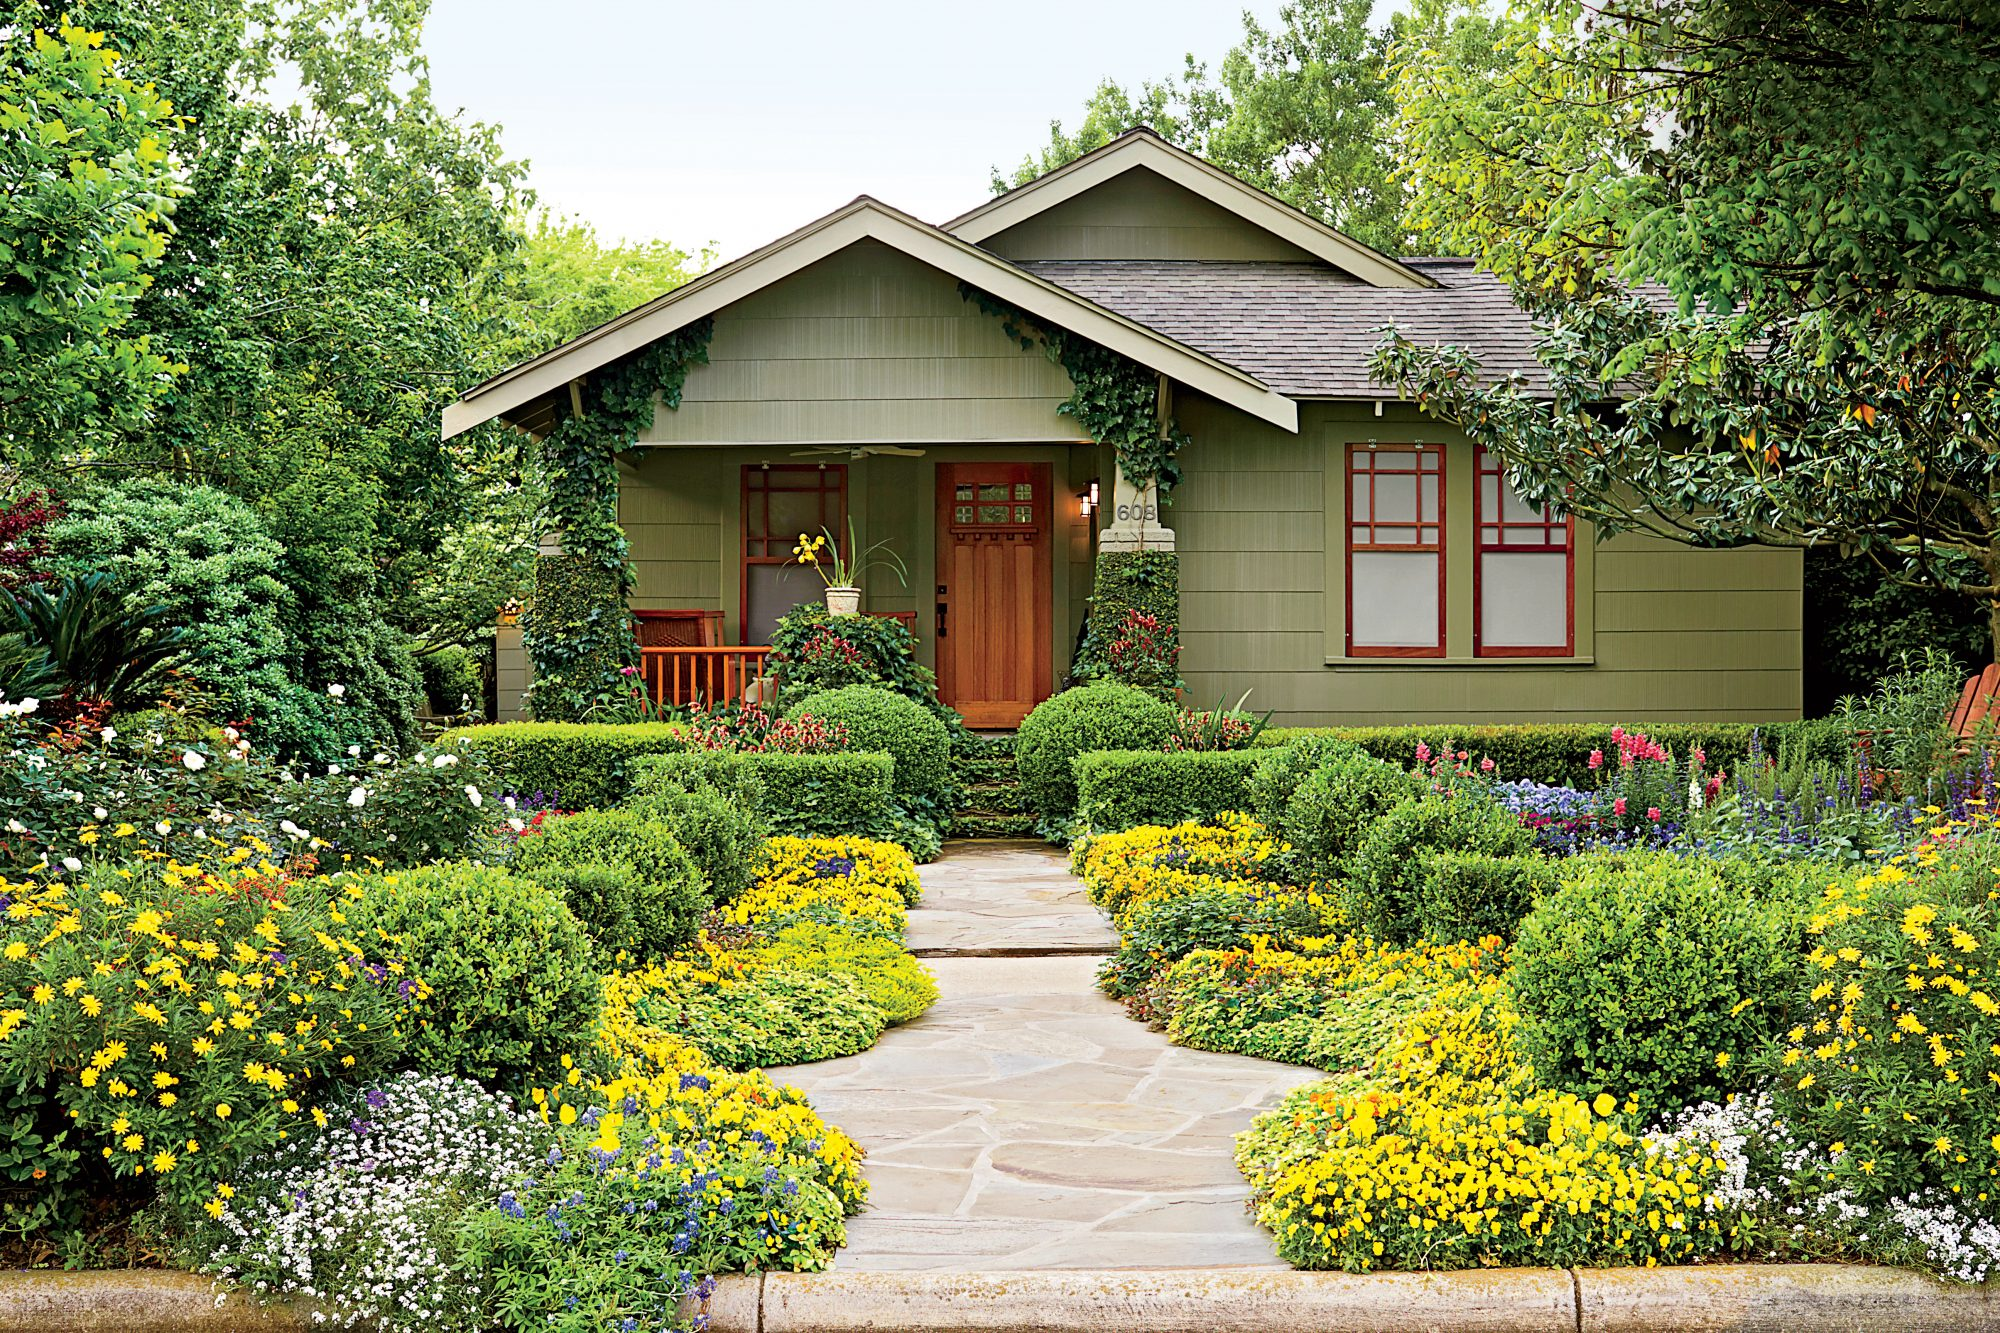 Houston Bungalow Garden - Southern Living